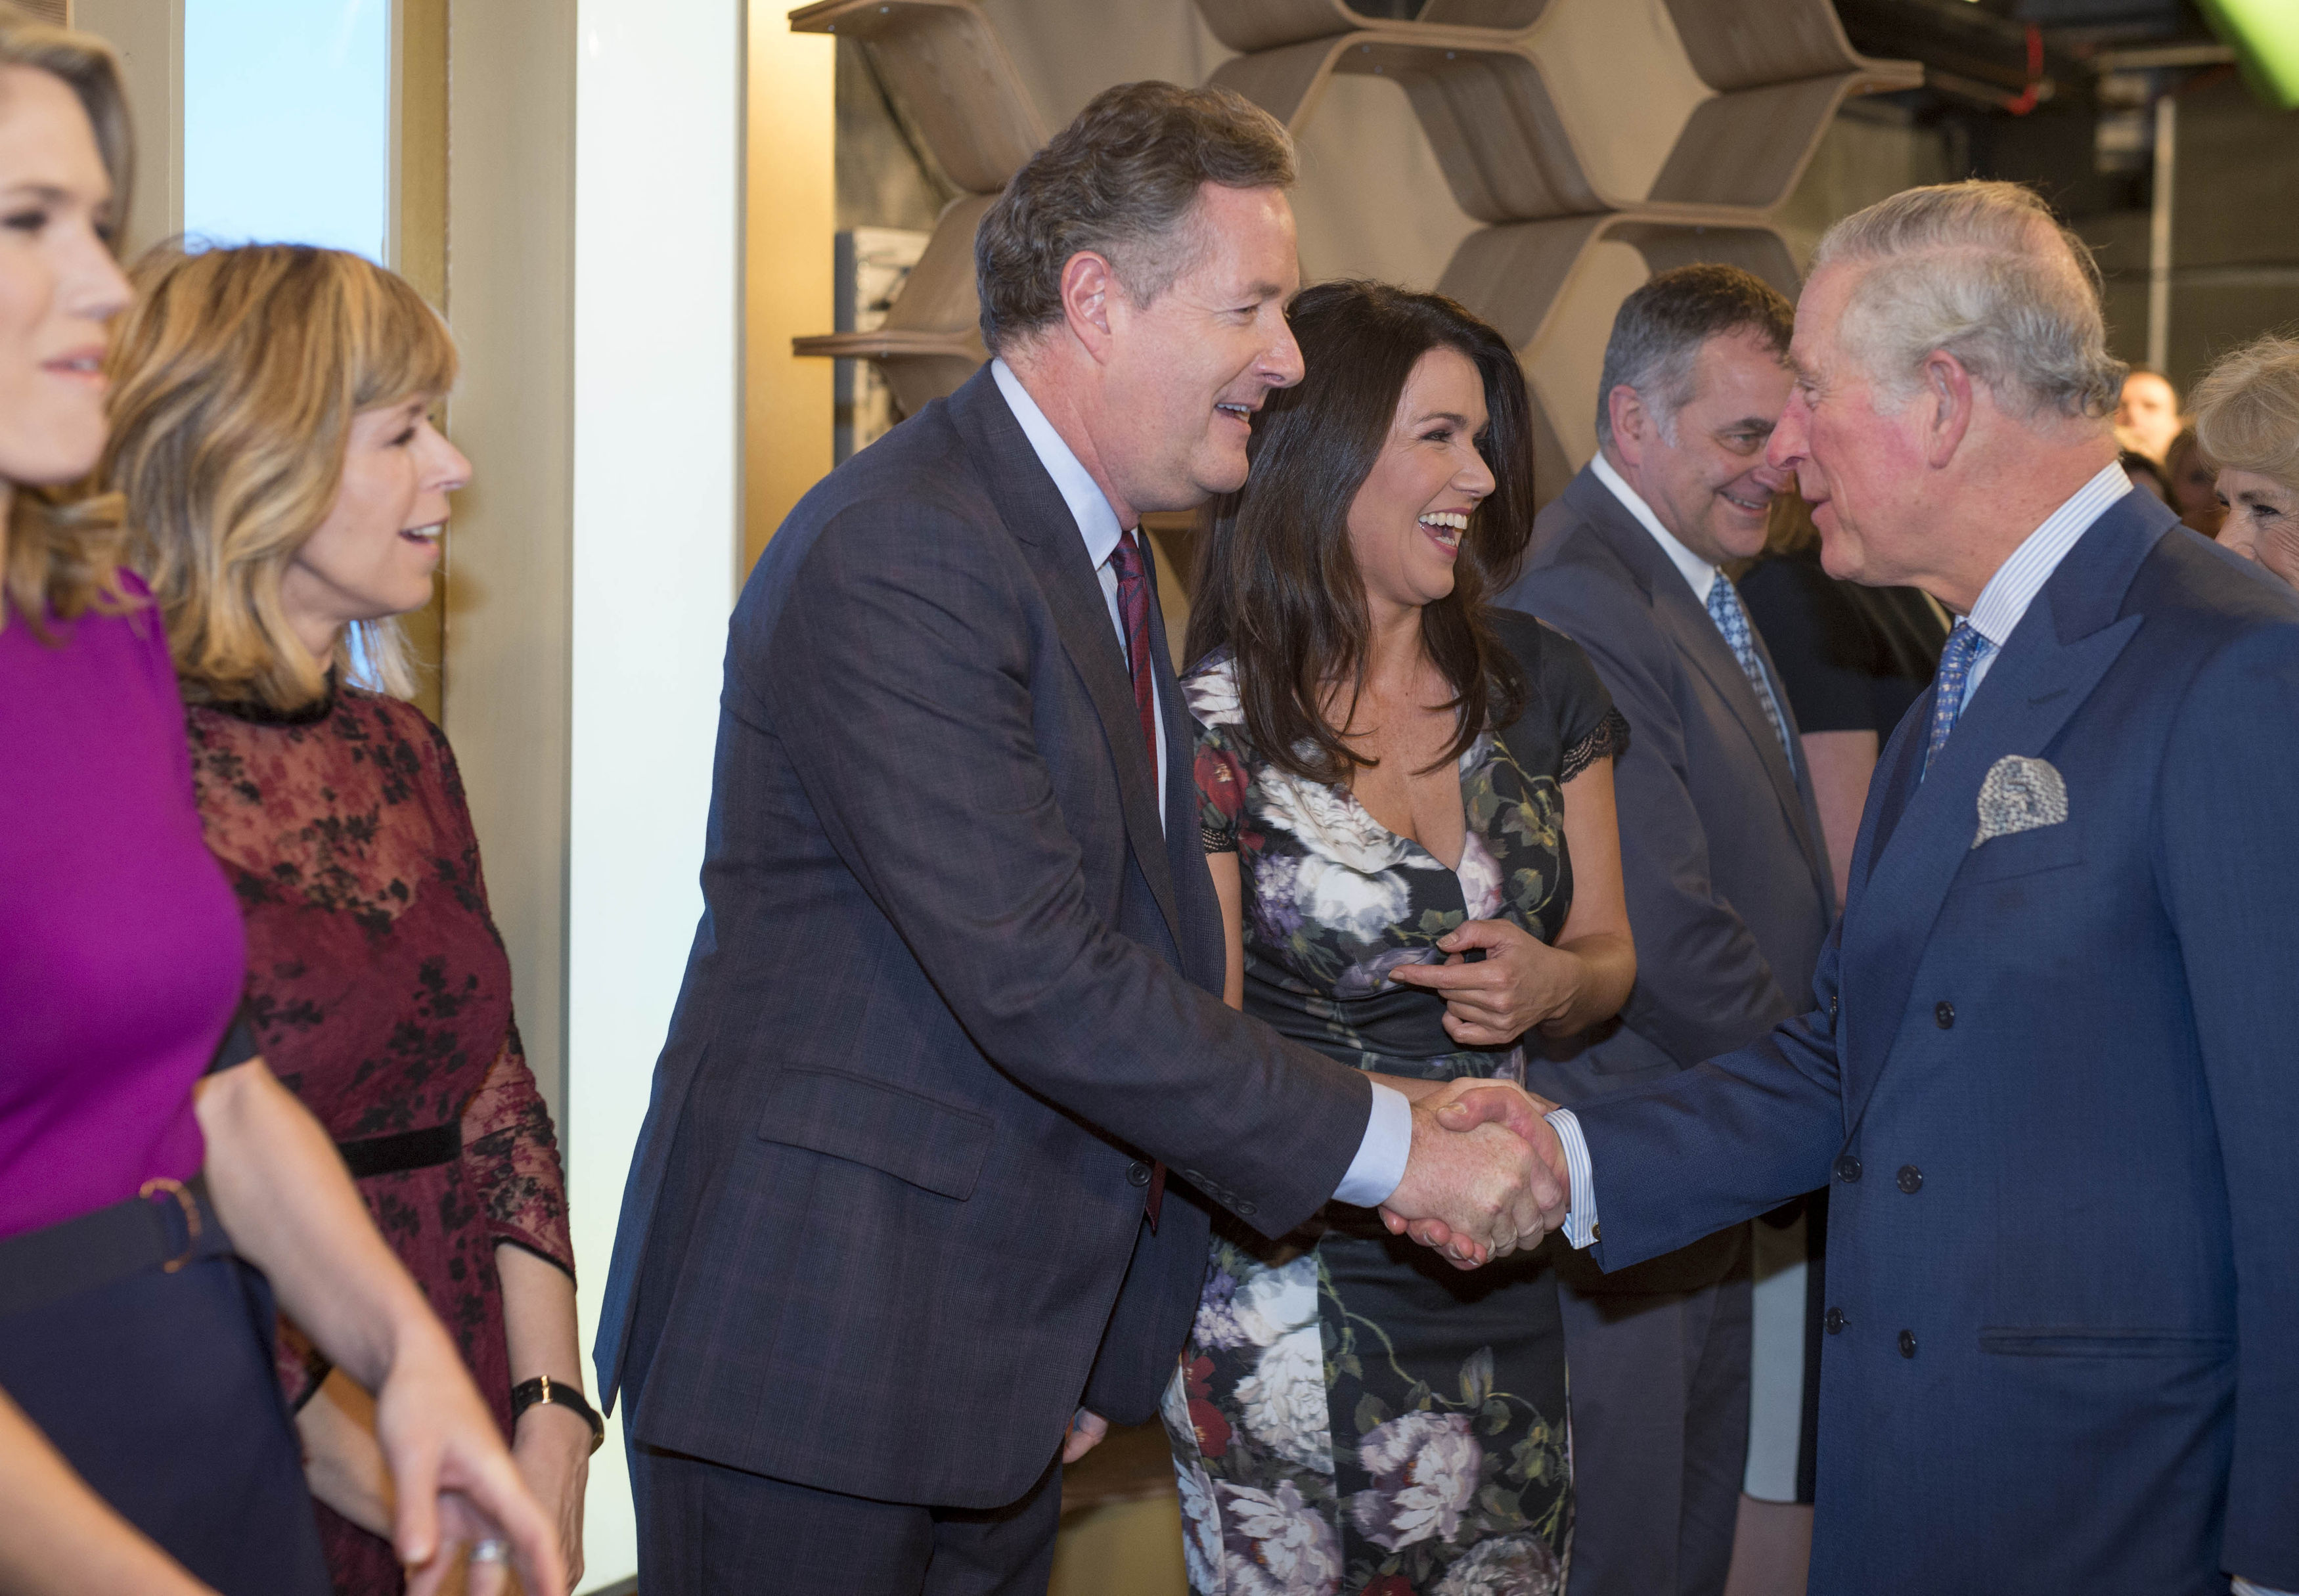 The Prince of Wales meets Piers Morgan during a visit to the London Television Centre, Lambeth, to celebrate the 90th anniversary of the Royal Television Society.